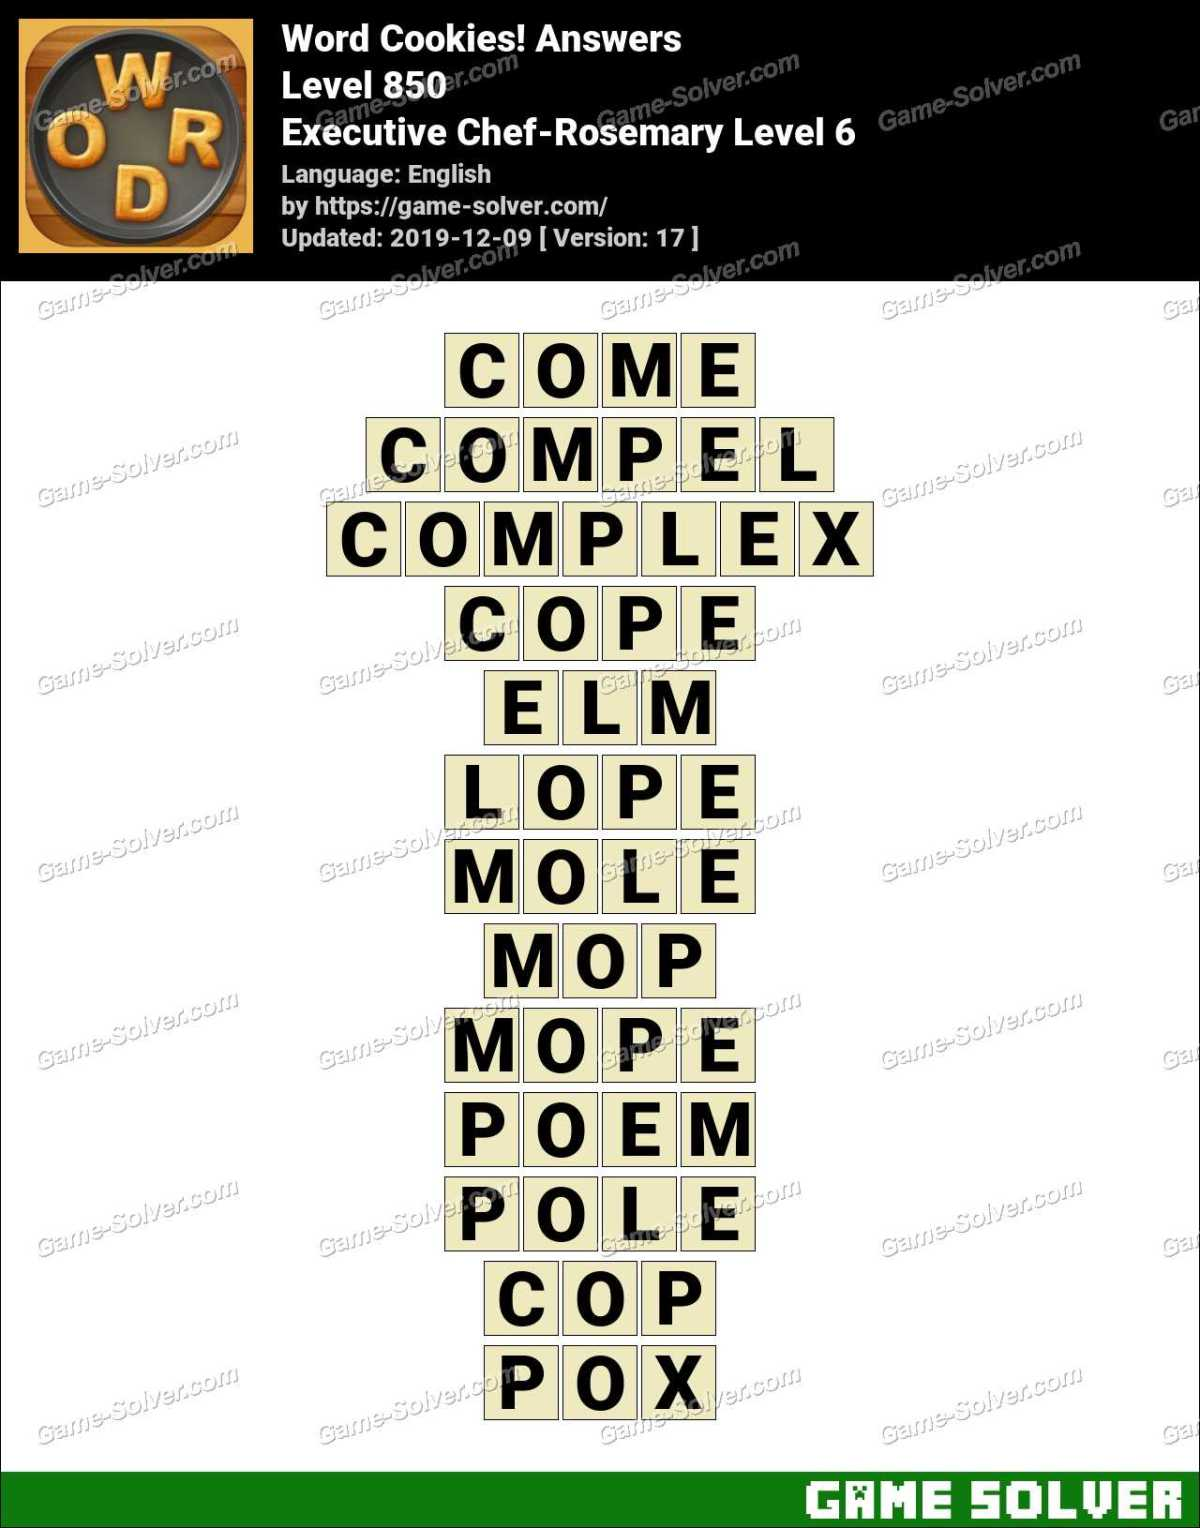 Word Cookies Executive Chef-Rosemary Level 6 Answers